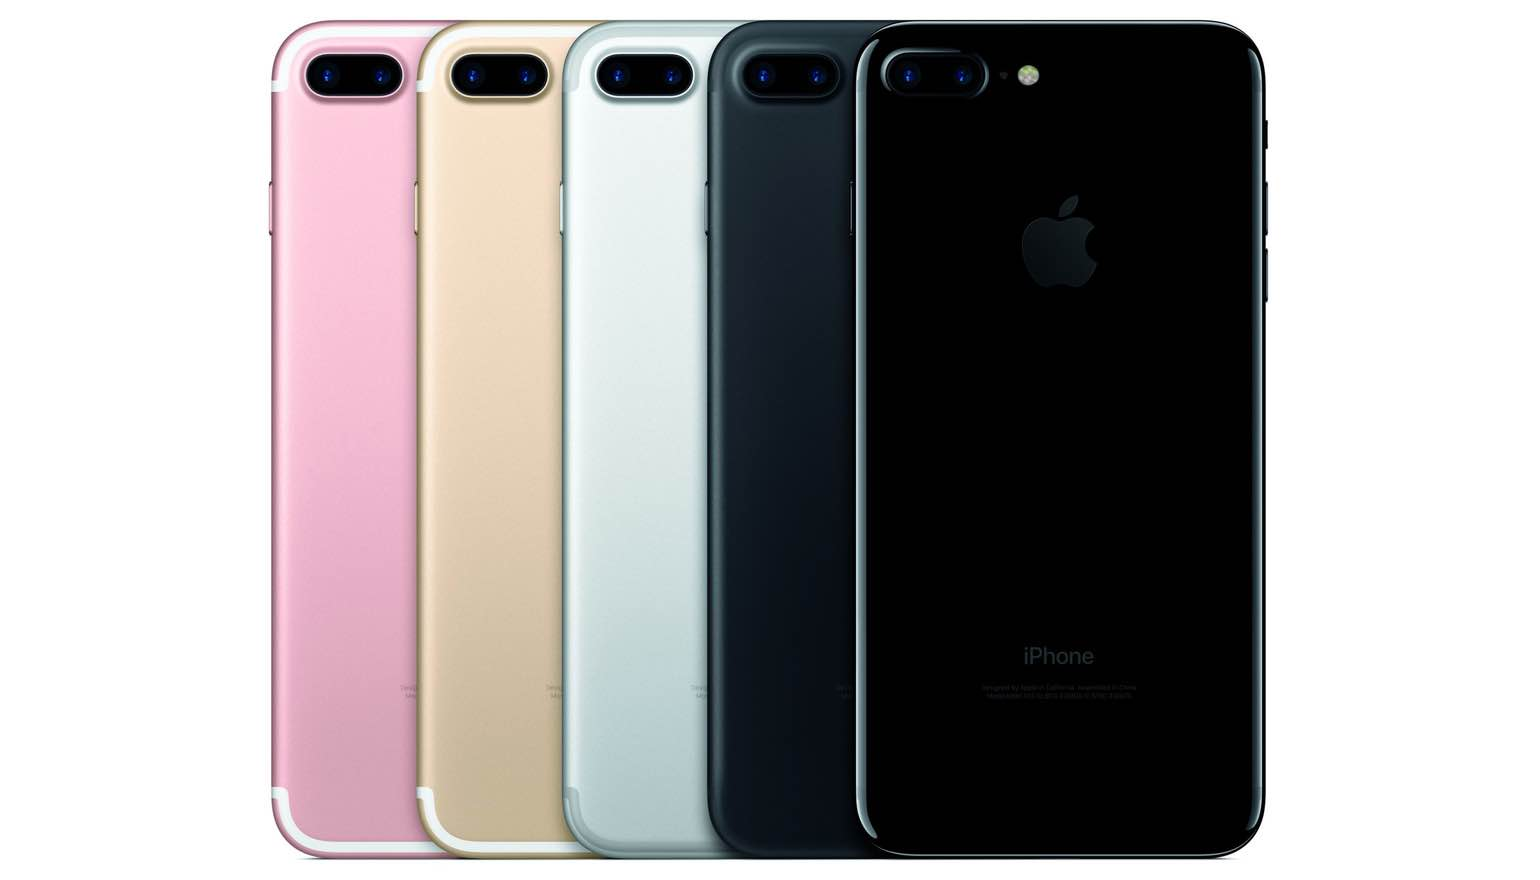 Apple rolls out new iPhones